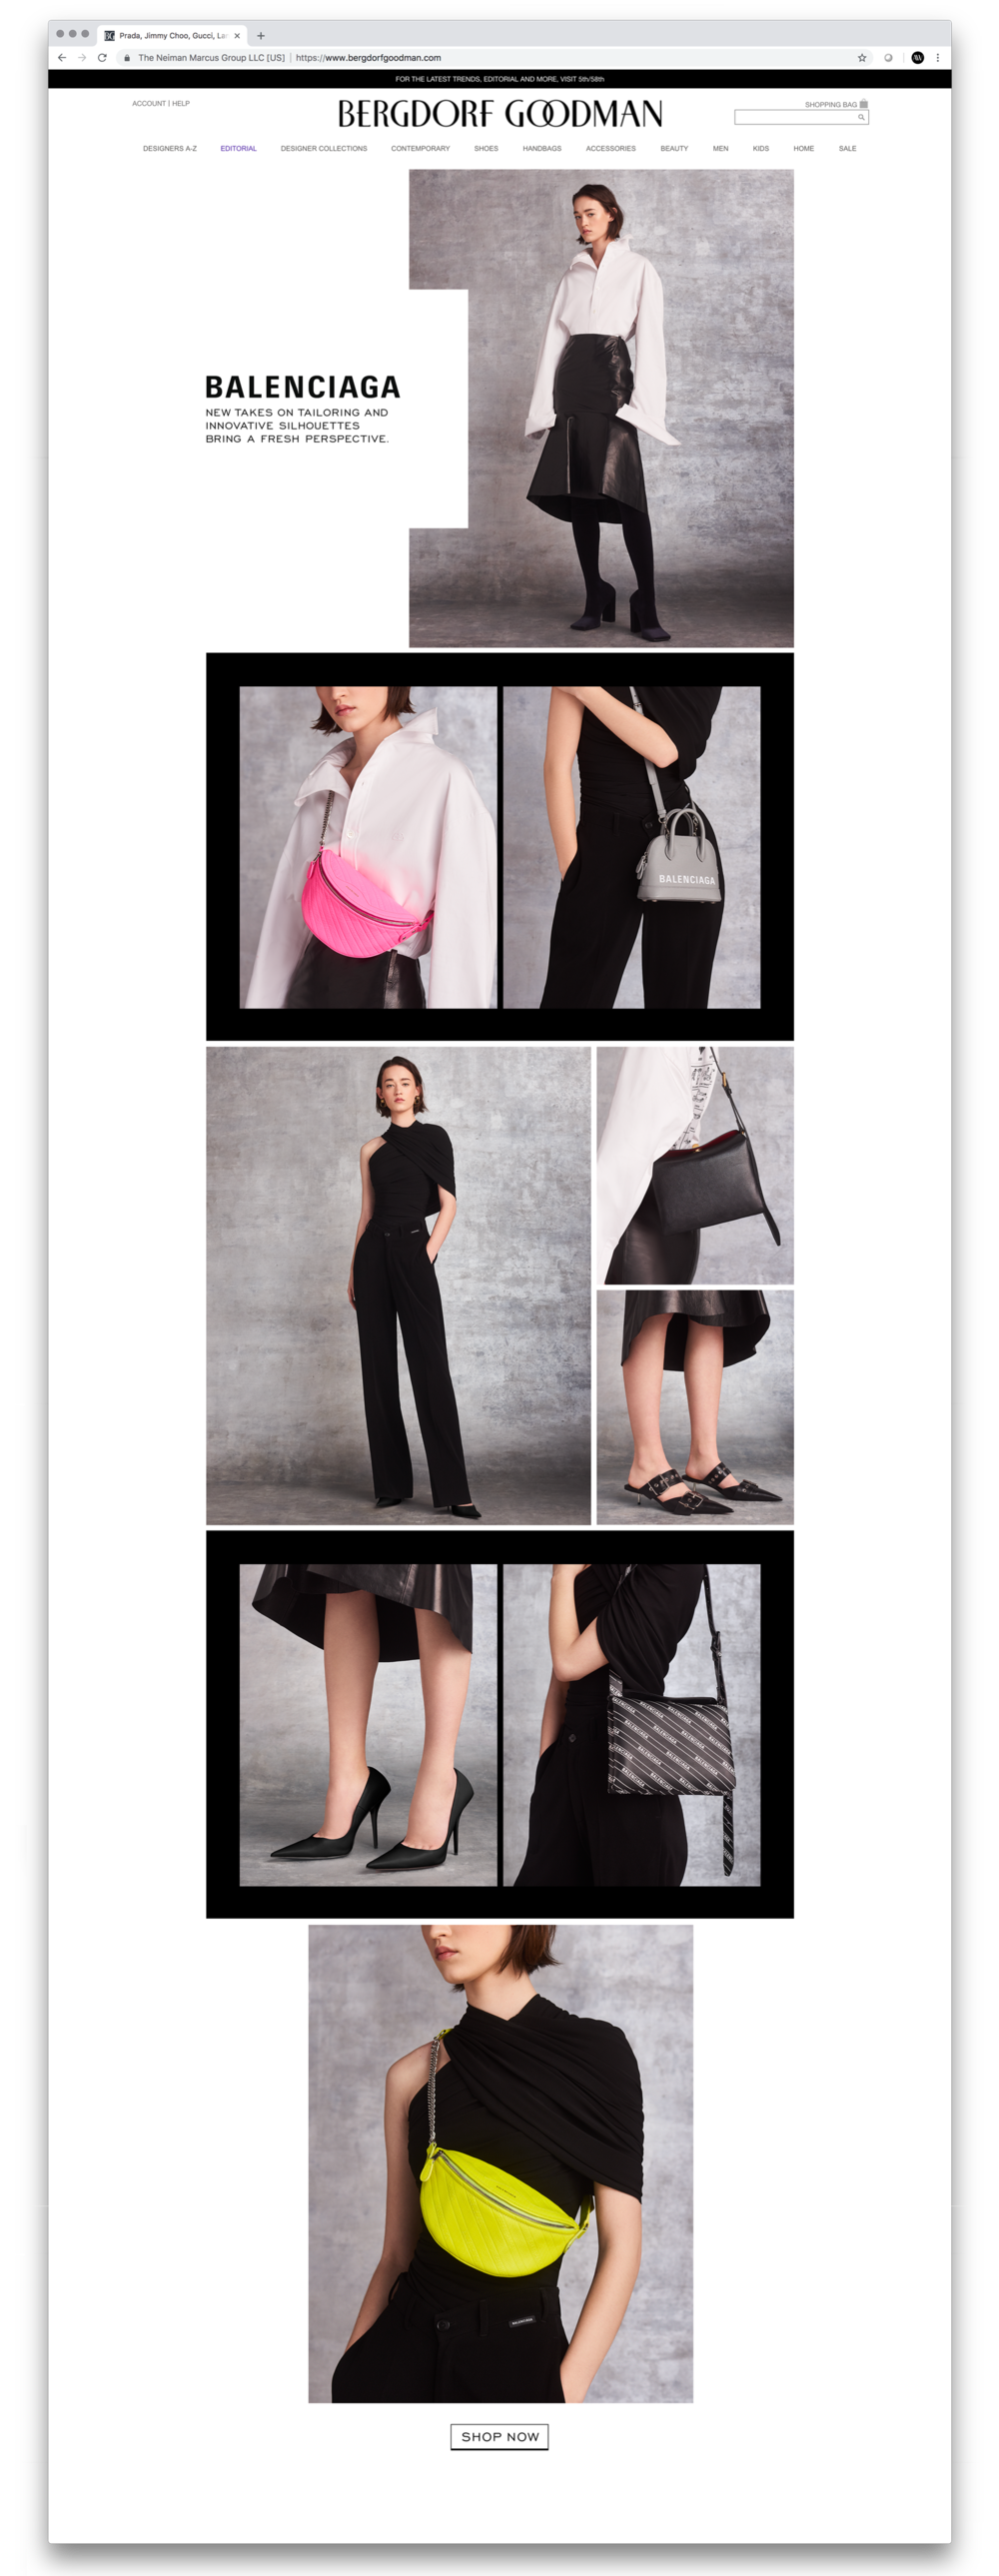 Balenciaga Spring '19 Collection Digital Lookbook. Design and On-Set Art Direction. Photographer Jai Odell, Fashion Stylist Nancy Goold.